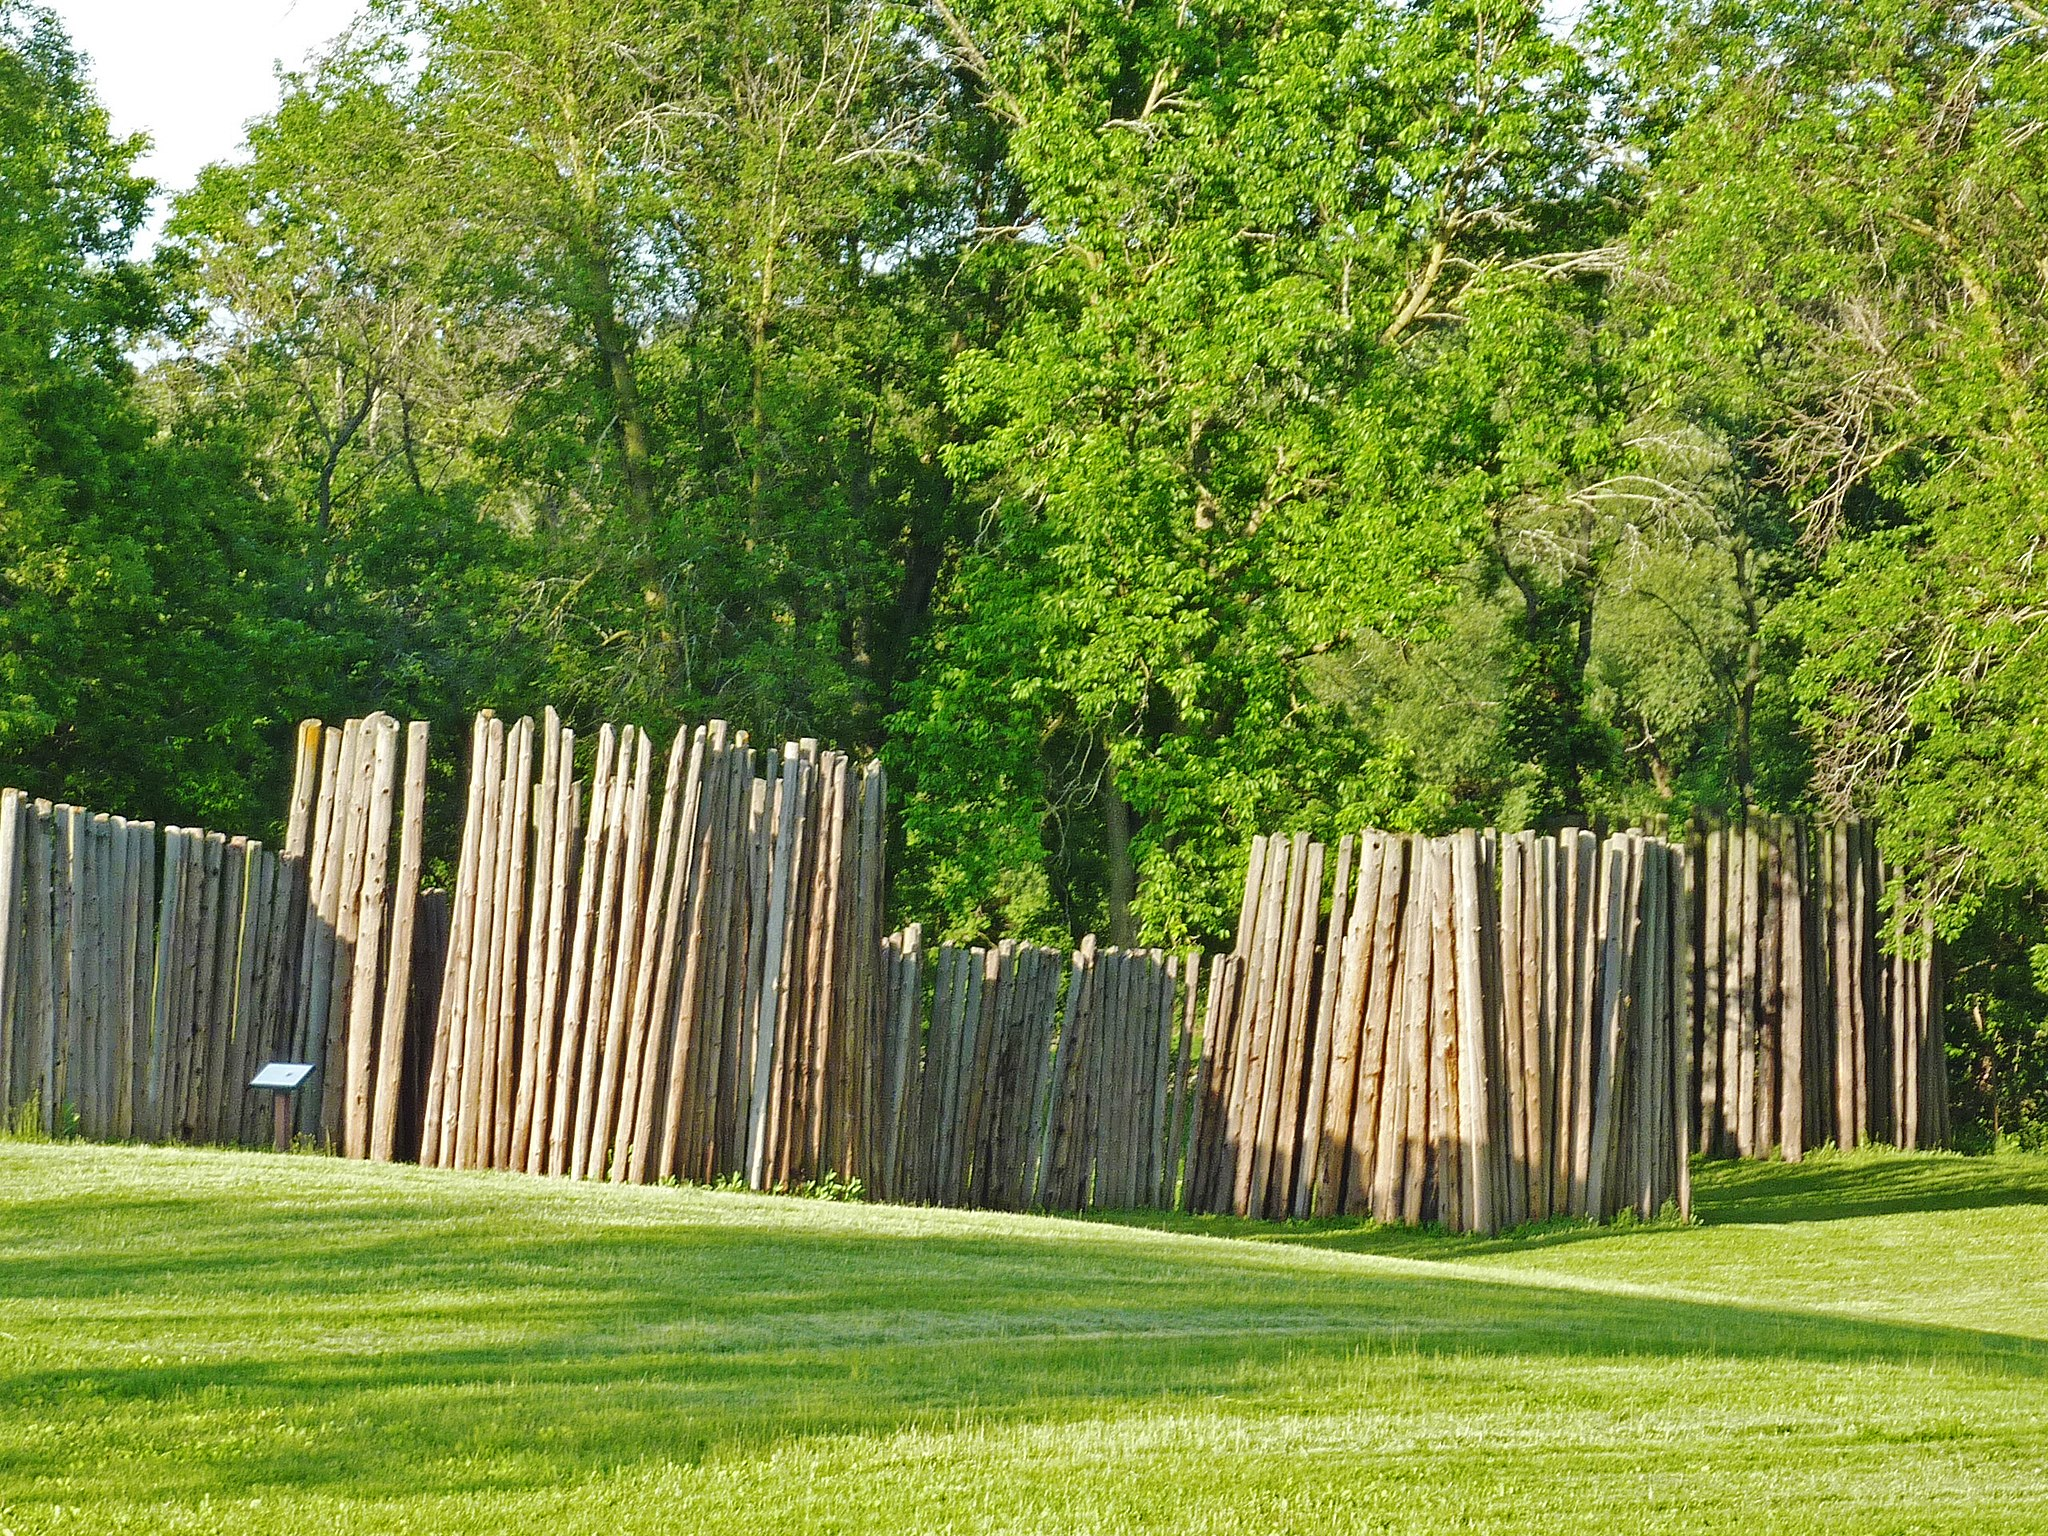 A wall created by posts in the earth at Aztalan